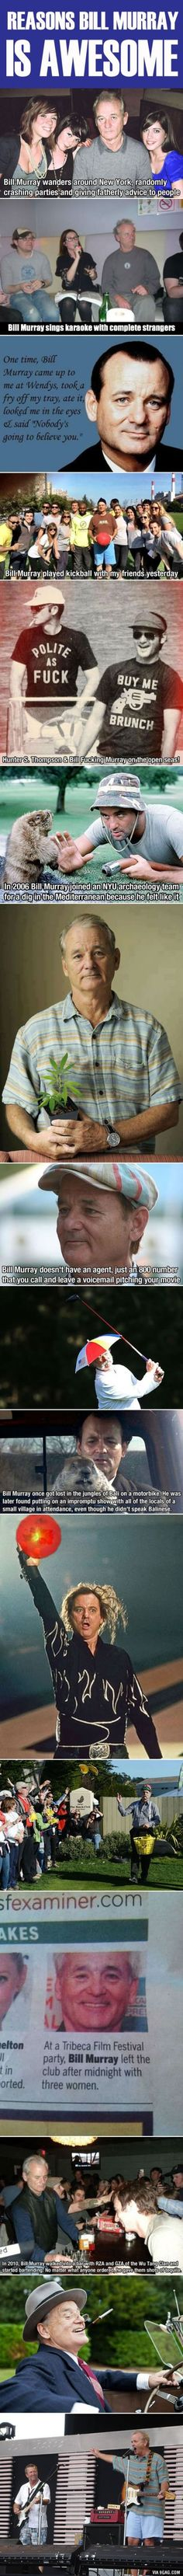 Bill Murray is the real Most Interesting Man In The World.